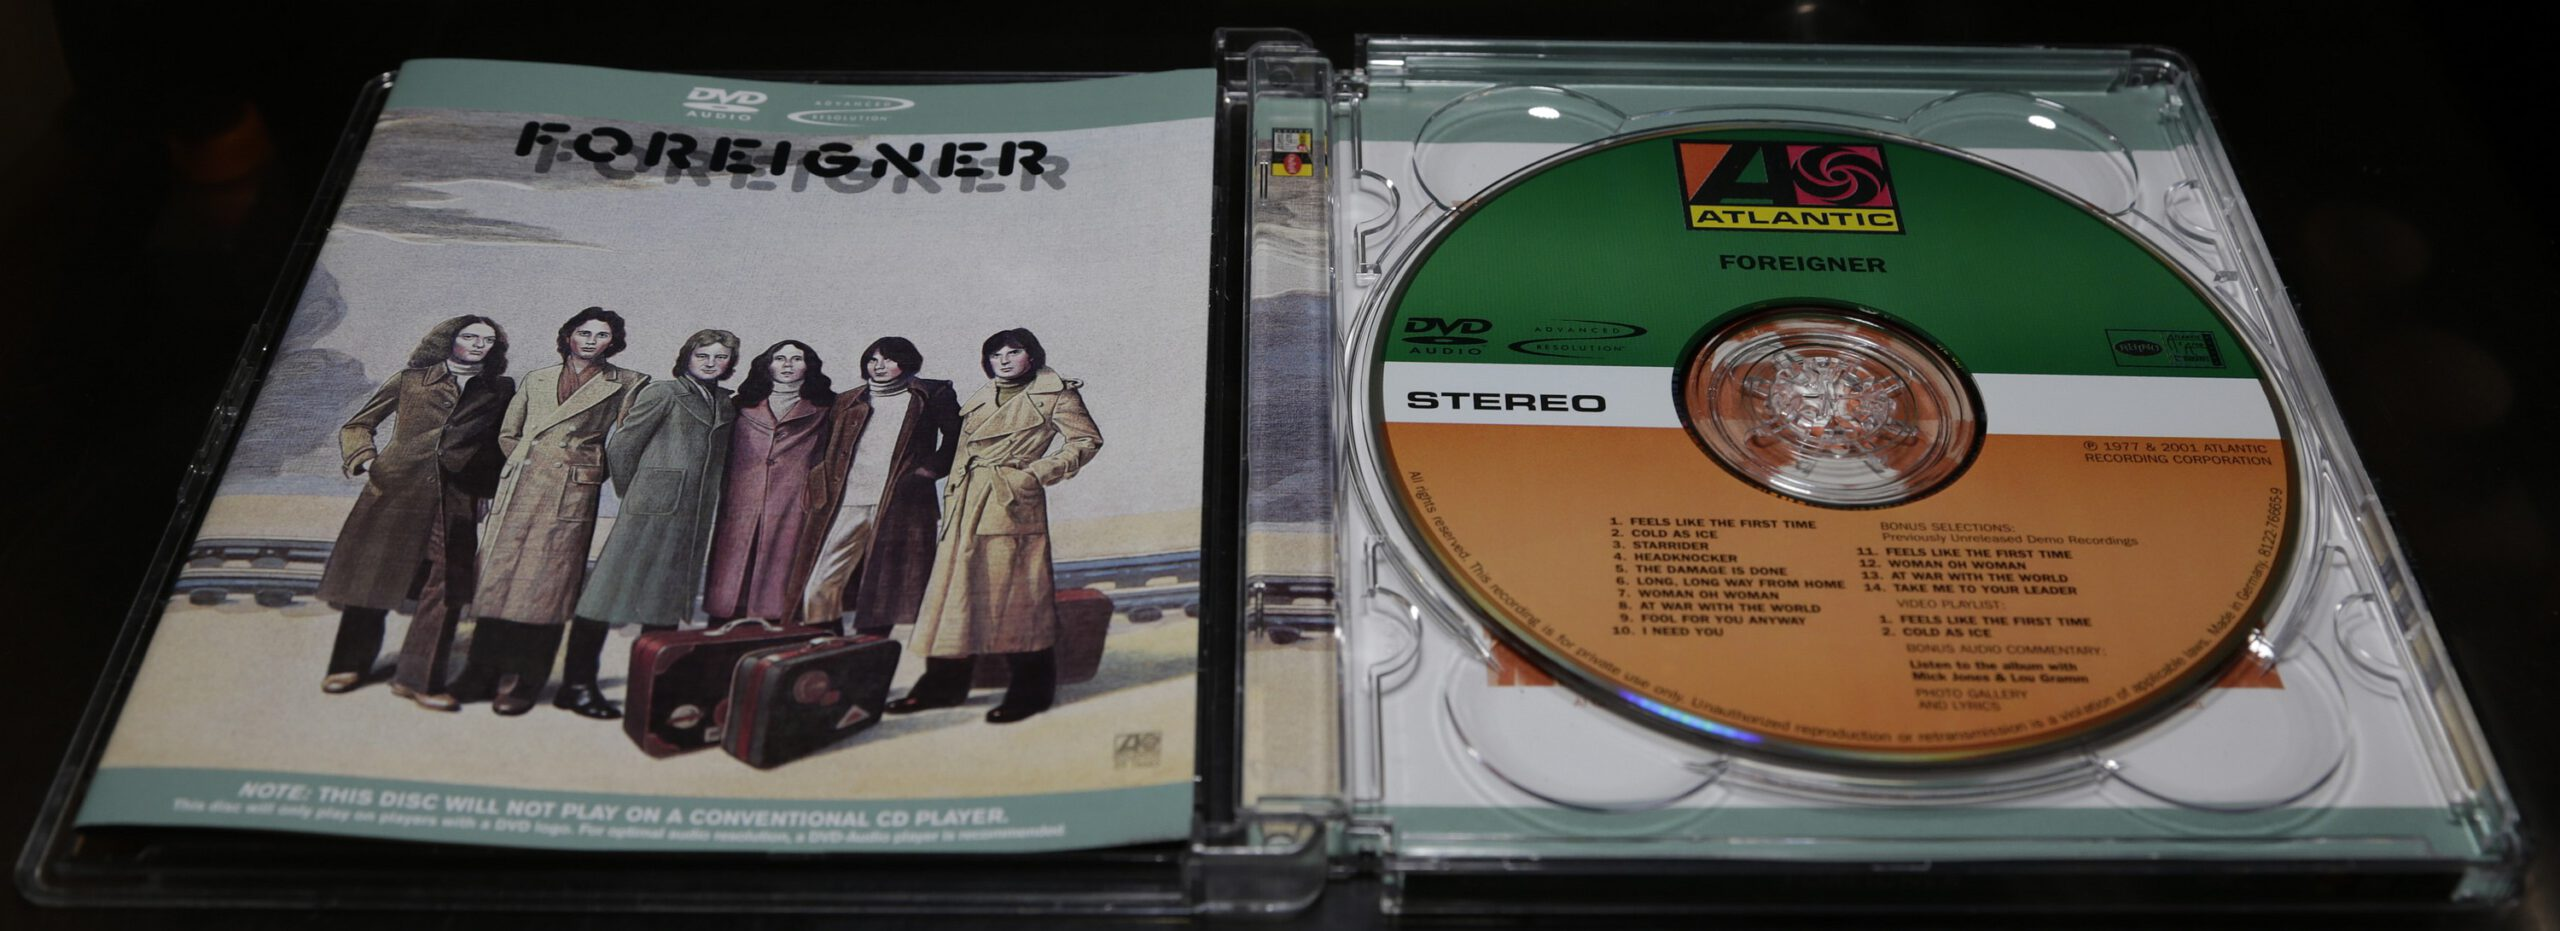 Foreigner Foreigner DVD Audio Surround Mix Review